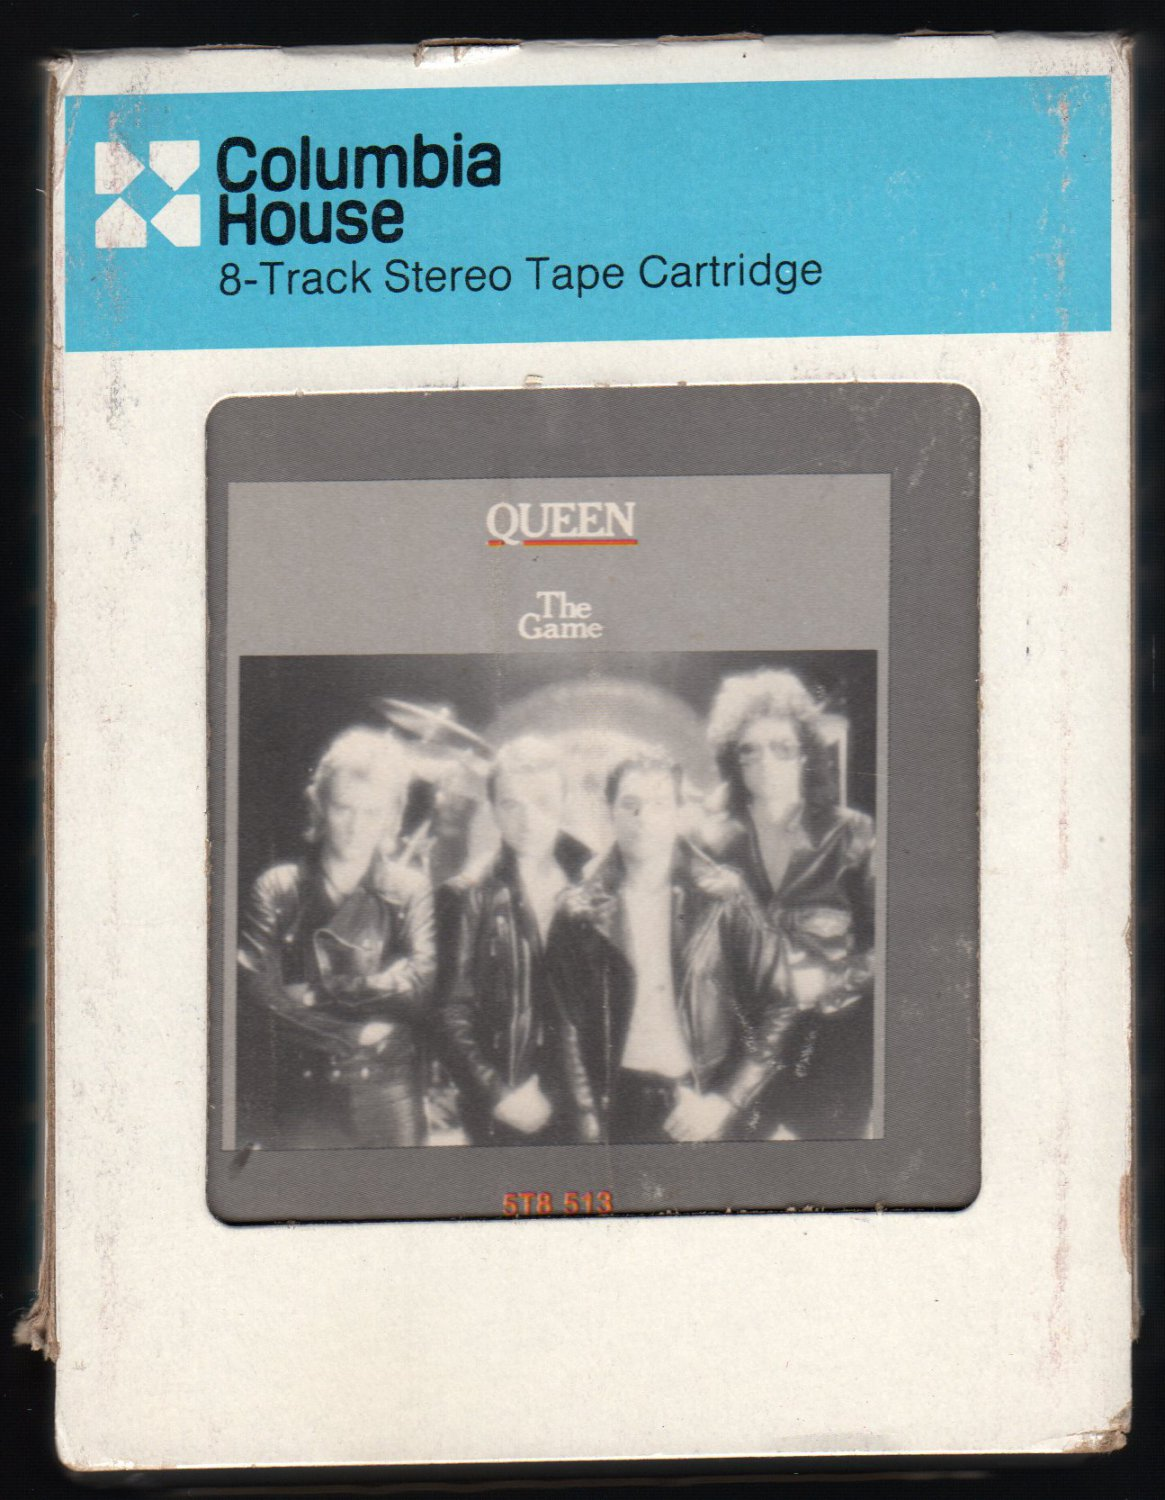 Queen - The Game 1980 CRC ELEKTRA A33 8-track tape